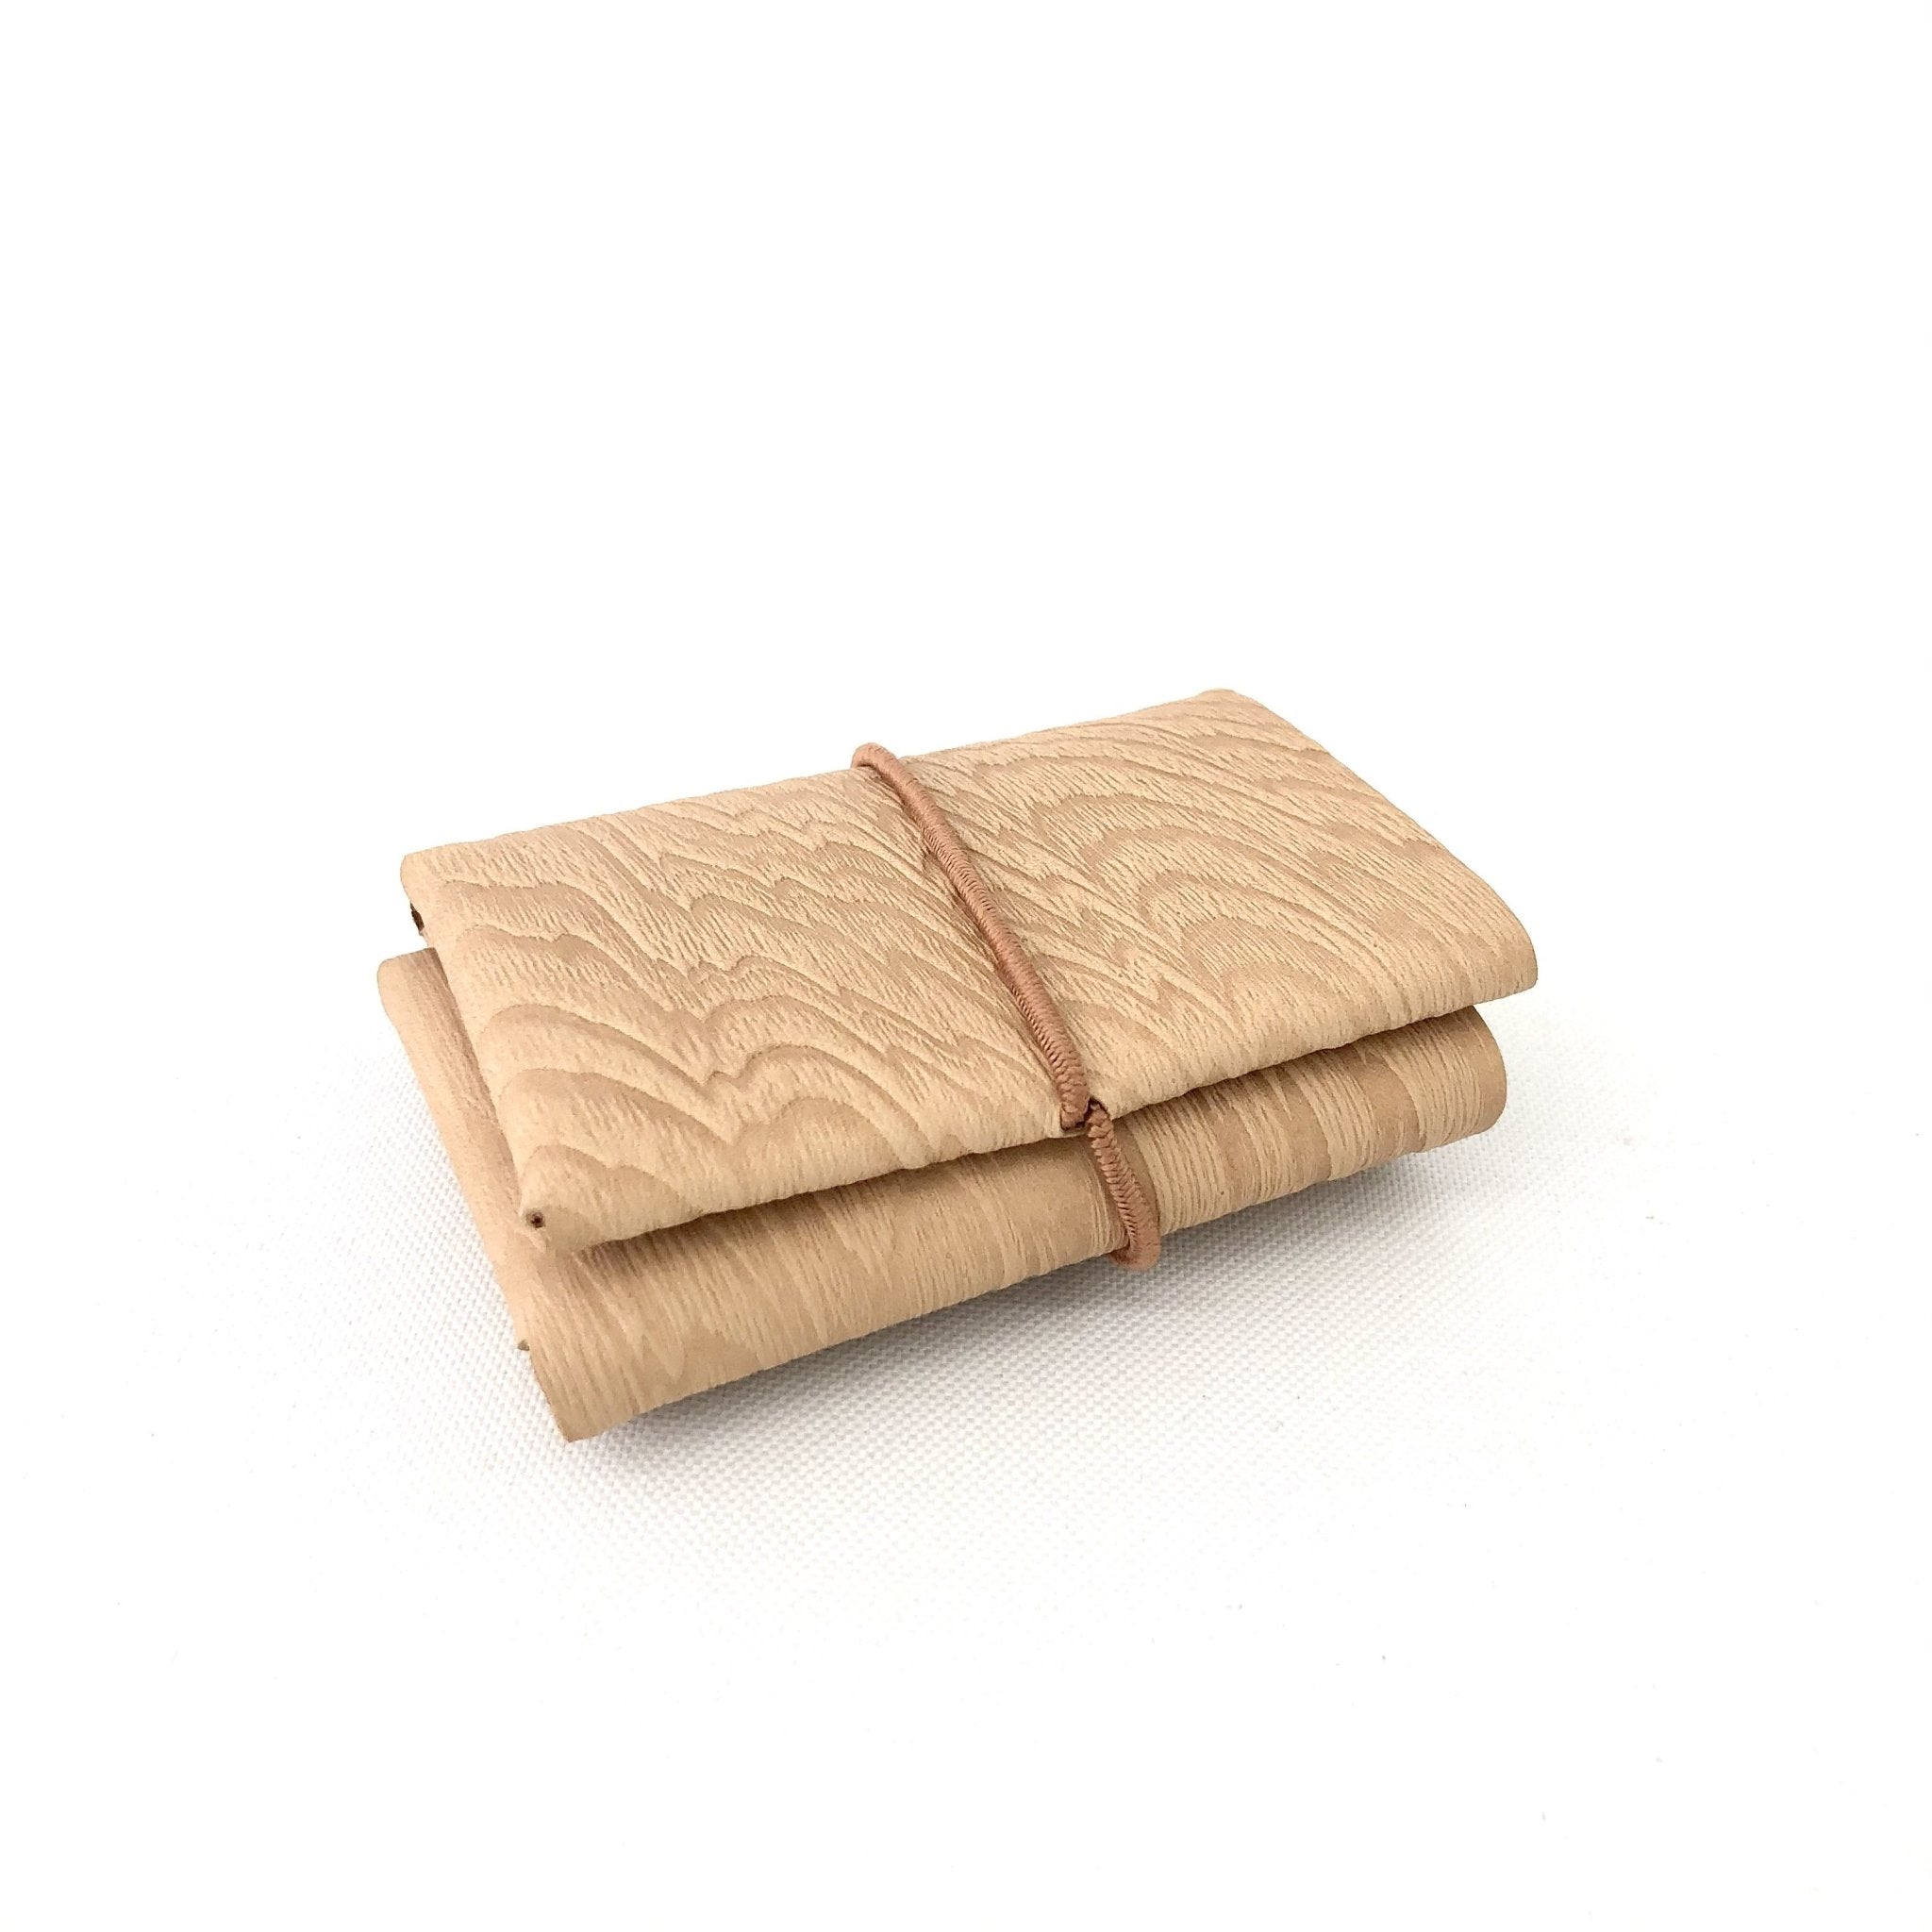 Irose Plywood Compact Wallet - tortoise general store